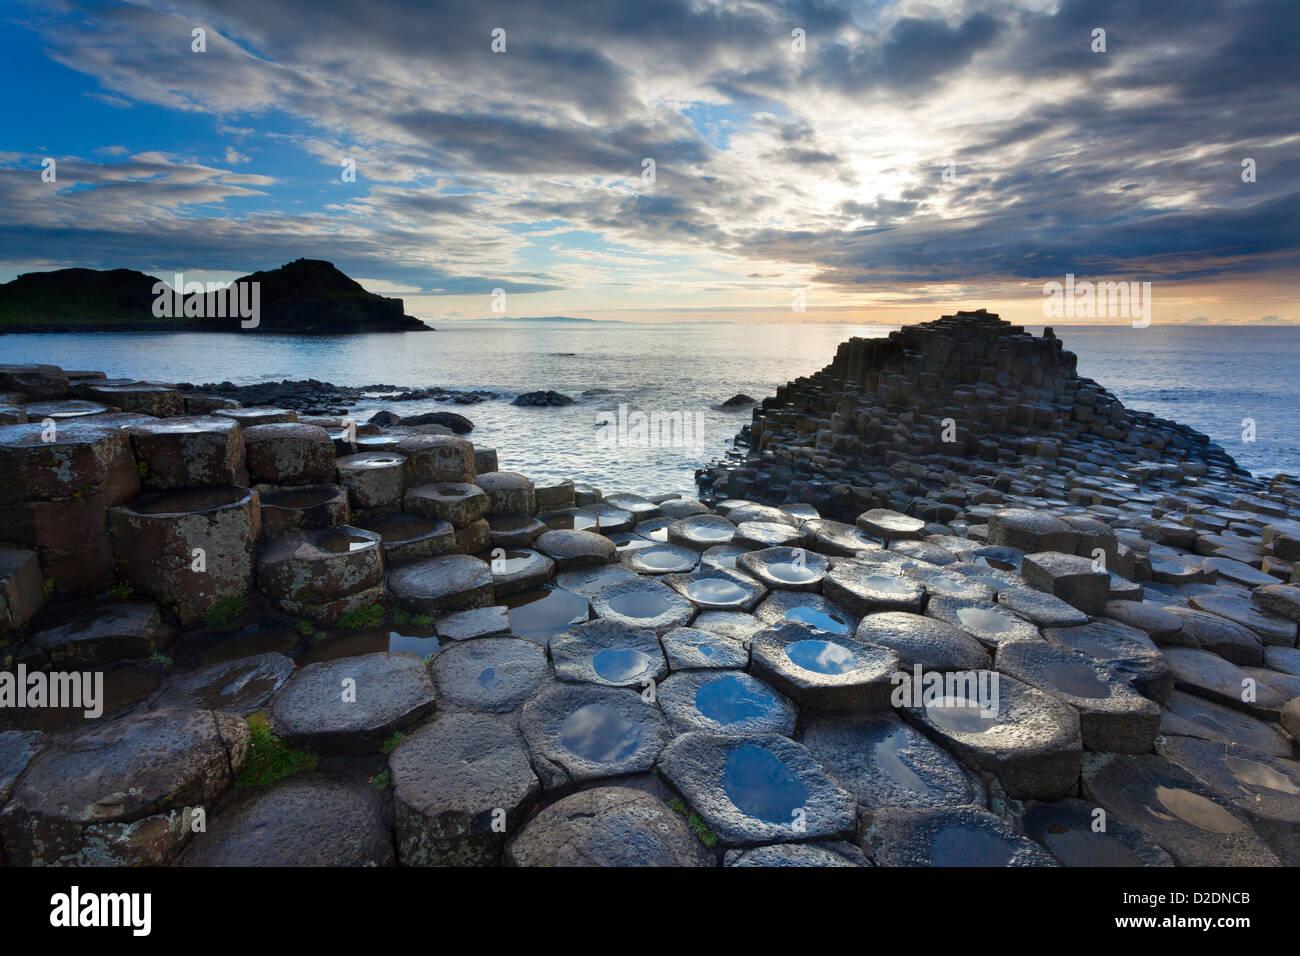 Evening at the Giant's Causeway, County Antrim, Northern Ireland. - Stock Image